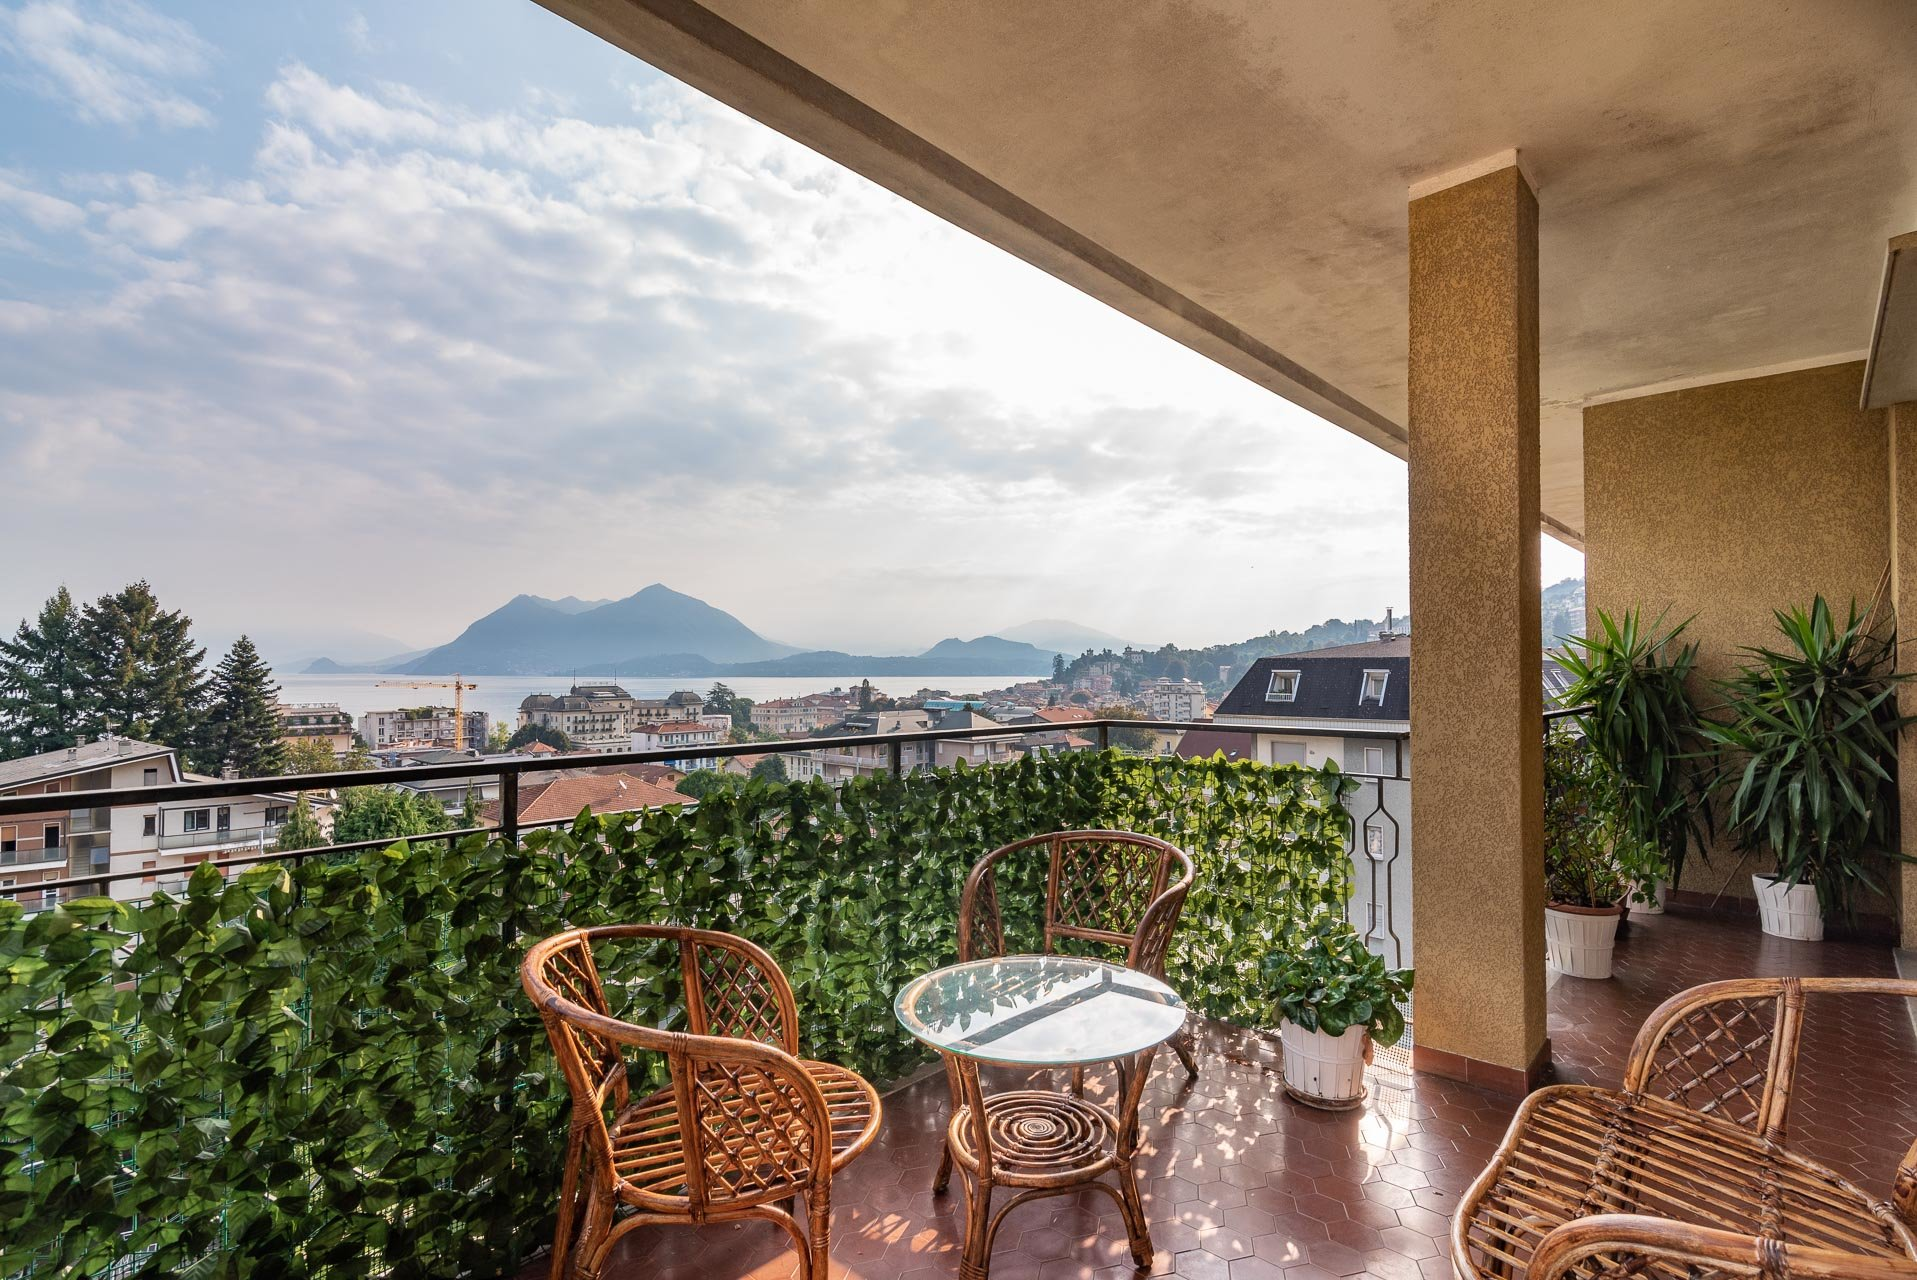 Apartment for rent in Stresa - lake view terrace